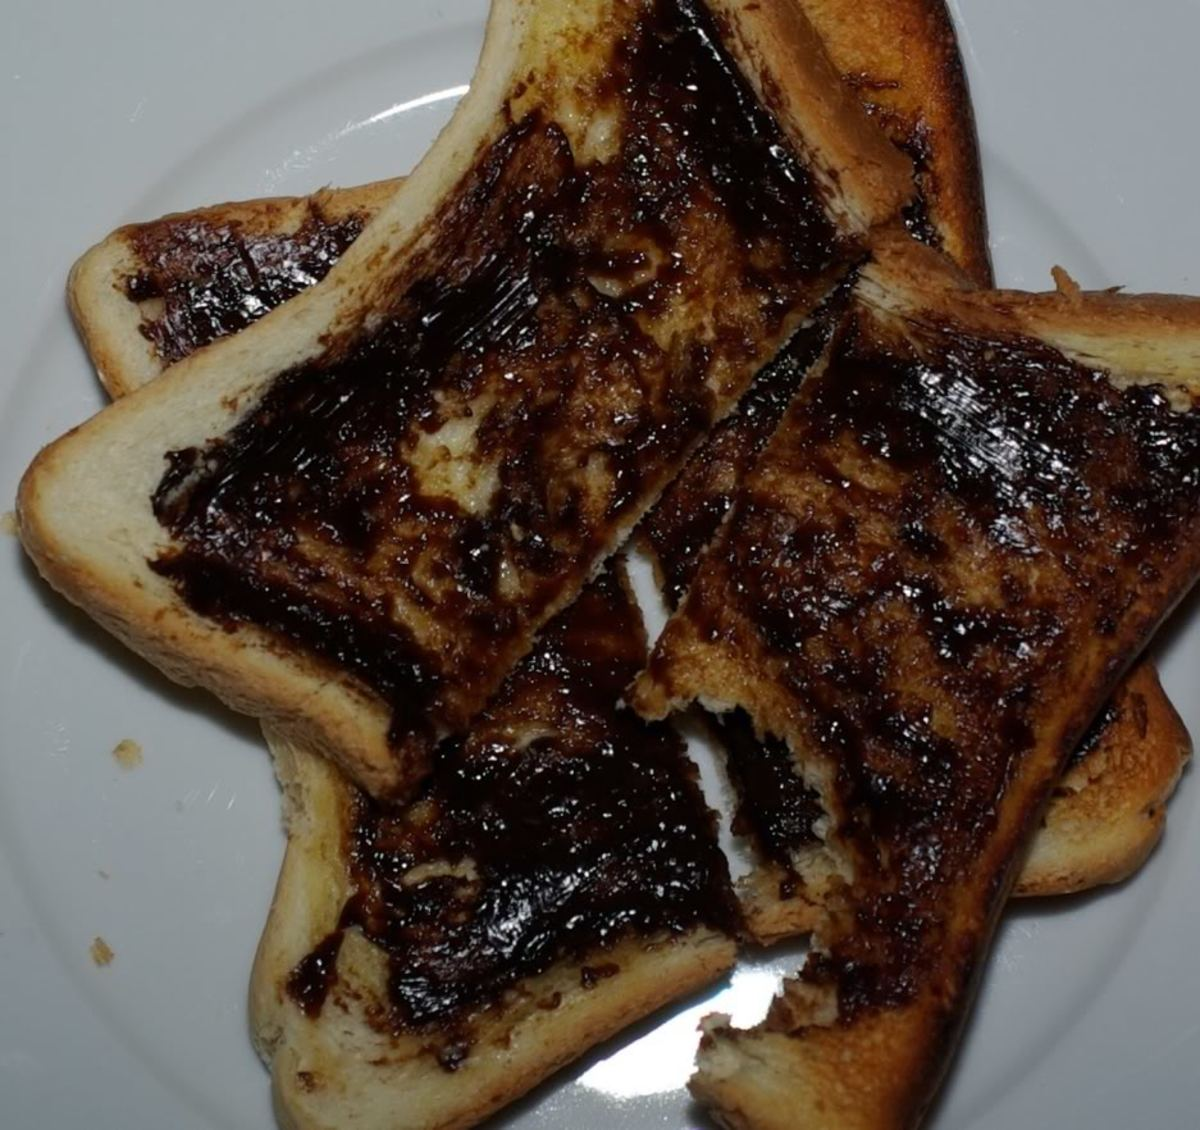 Far too much Vegemite